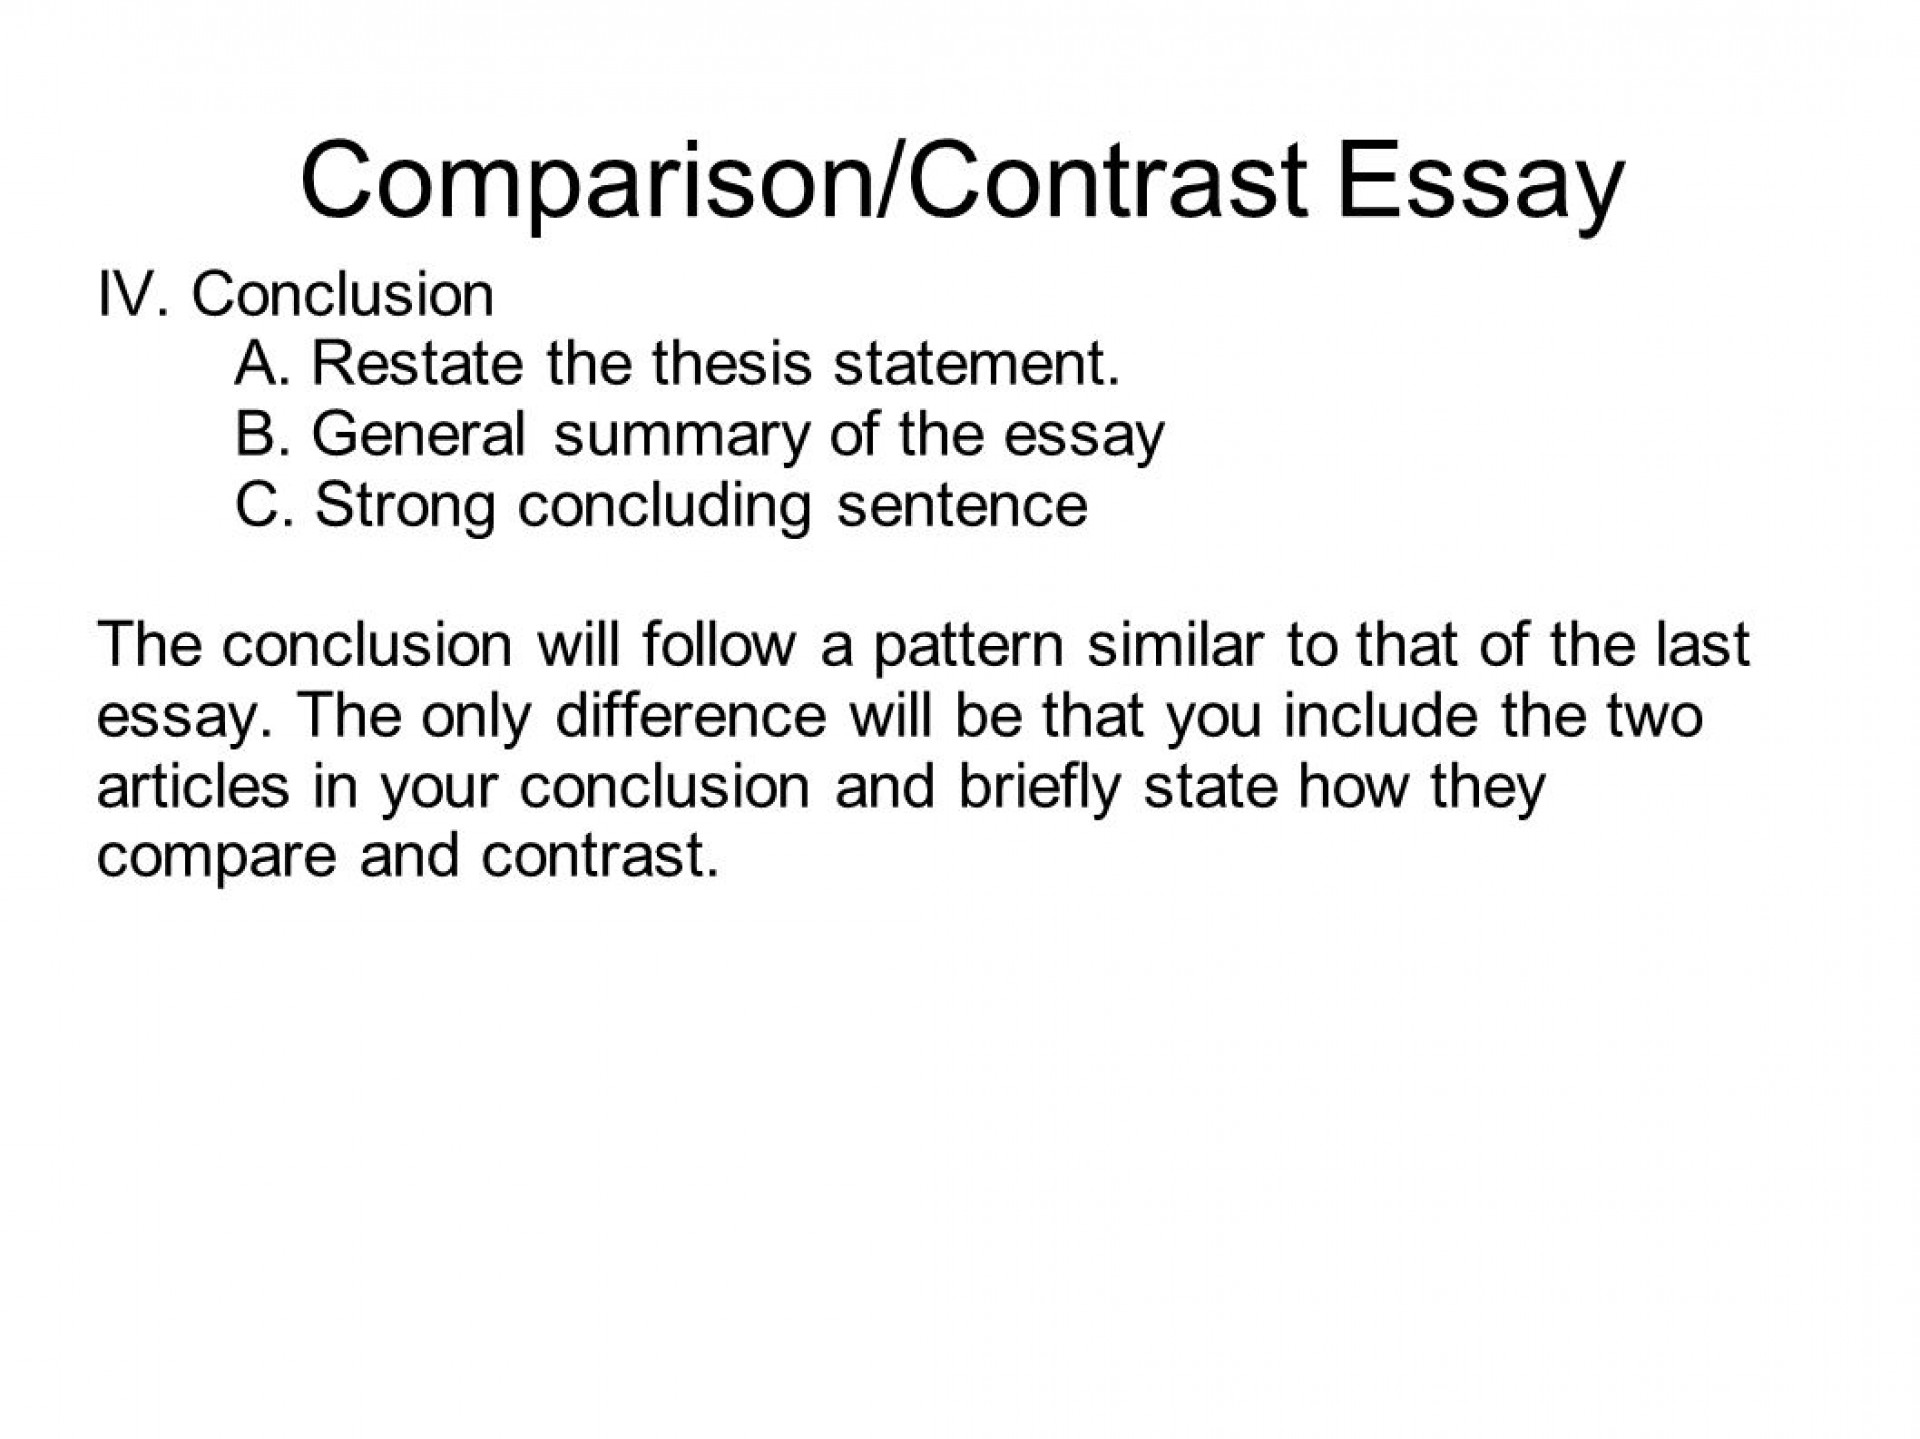 021 How To Write Compare And Contrast Essay Good Essays Conclusion Paragraph For Career Portfolios Sli Nursing Writing Senior Reflective Striking A Introduction 1920